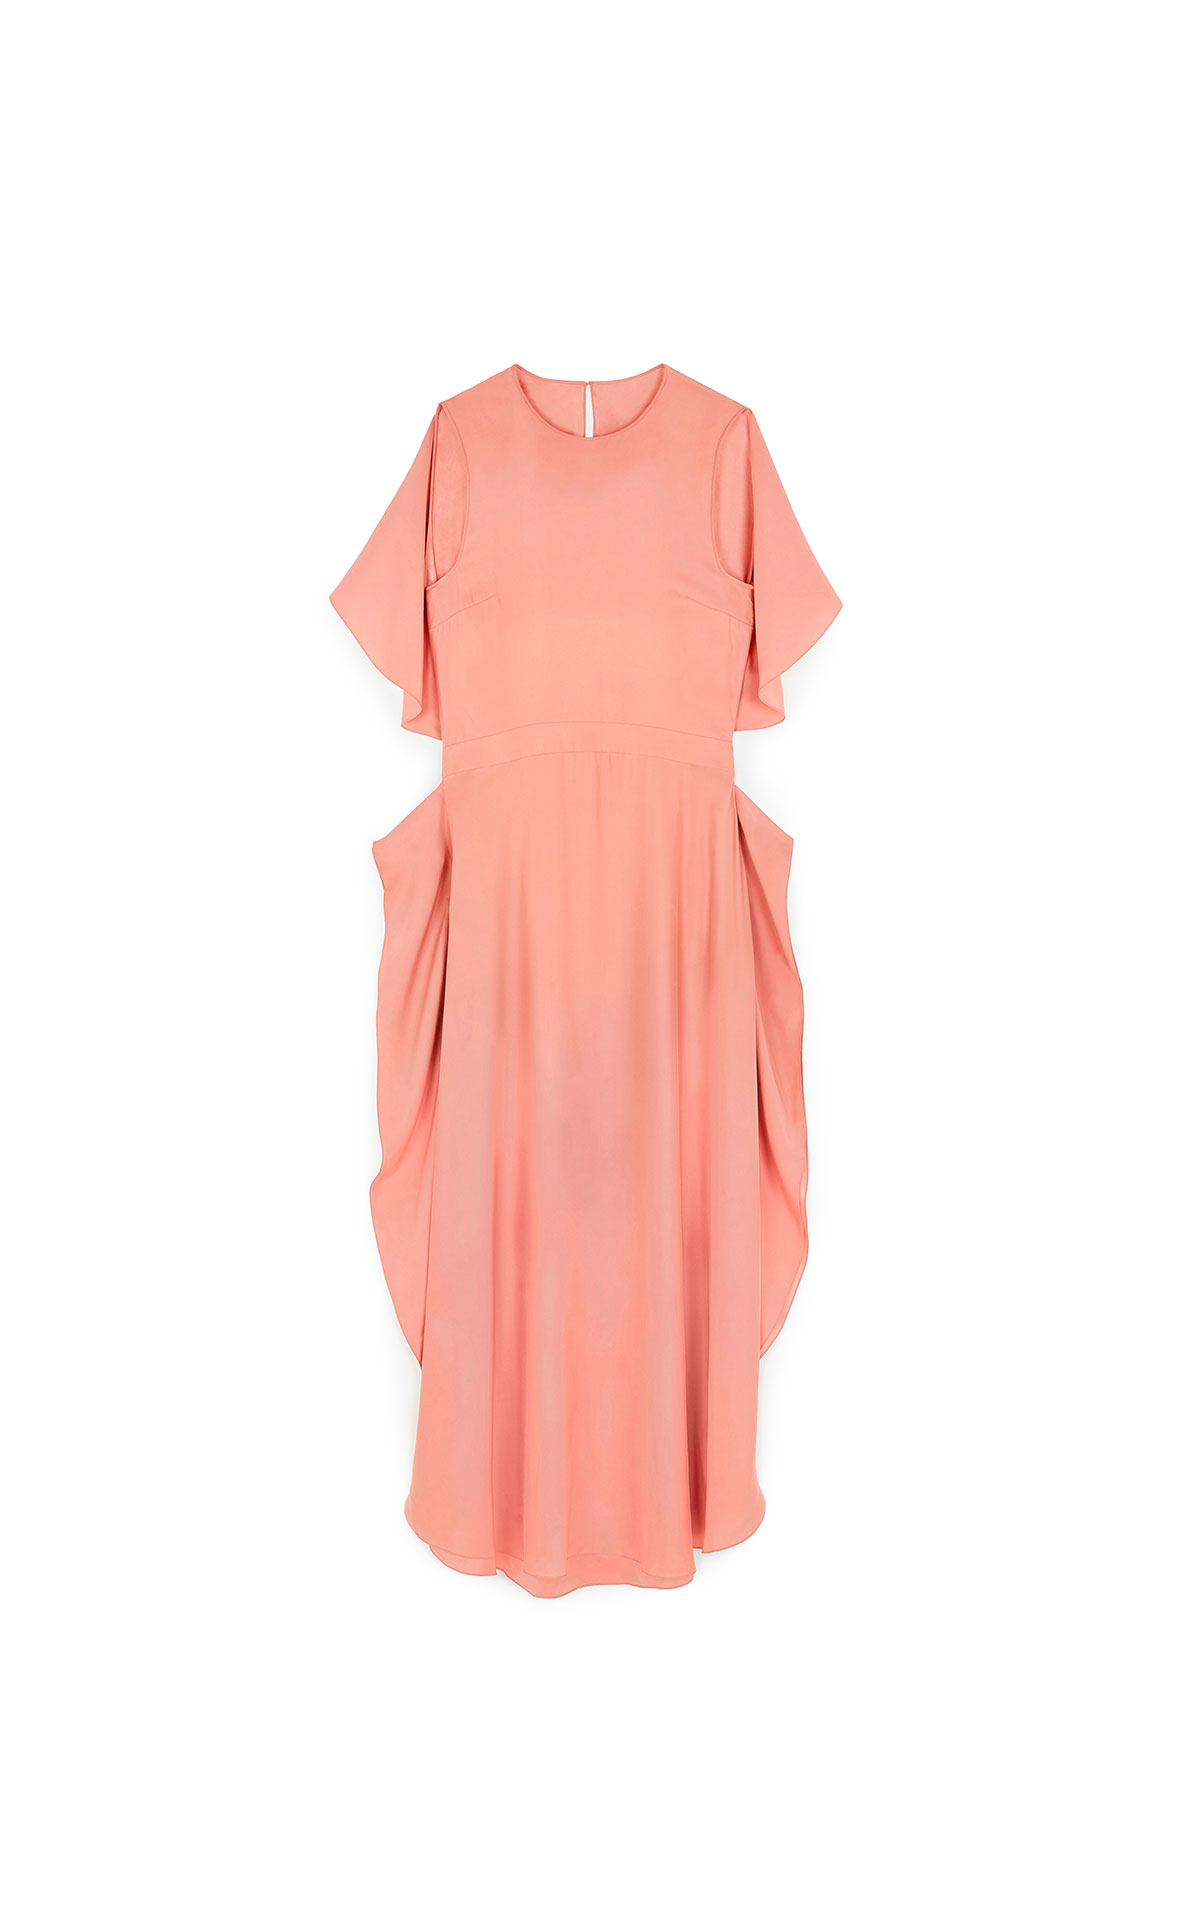 Stella McCartney Rosa midi dress from Bicester Village